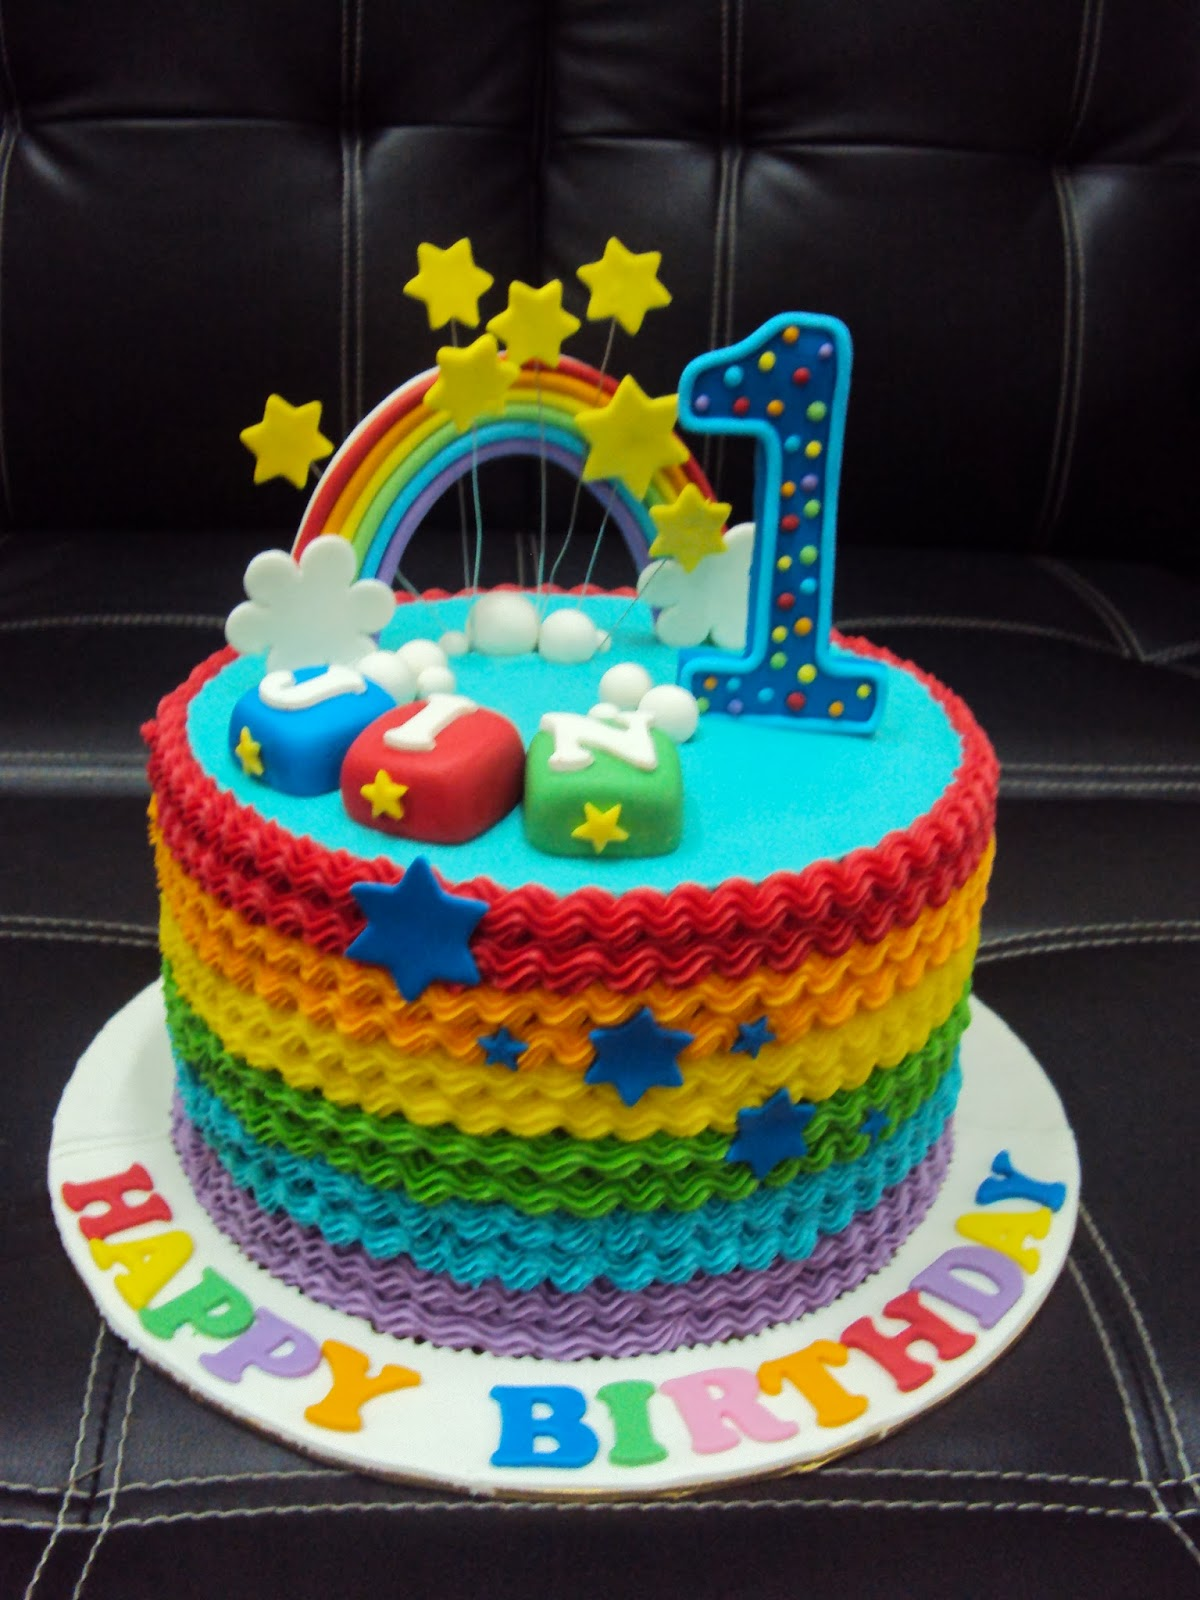 L Mis Cakes Amp Cupcakes Ipoh Contact 012